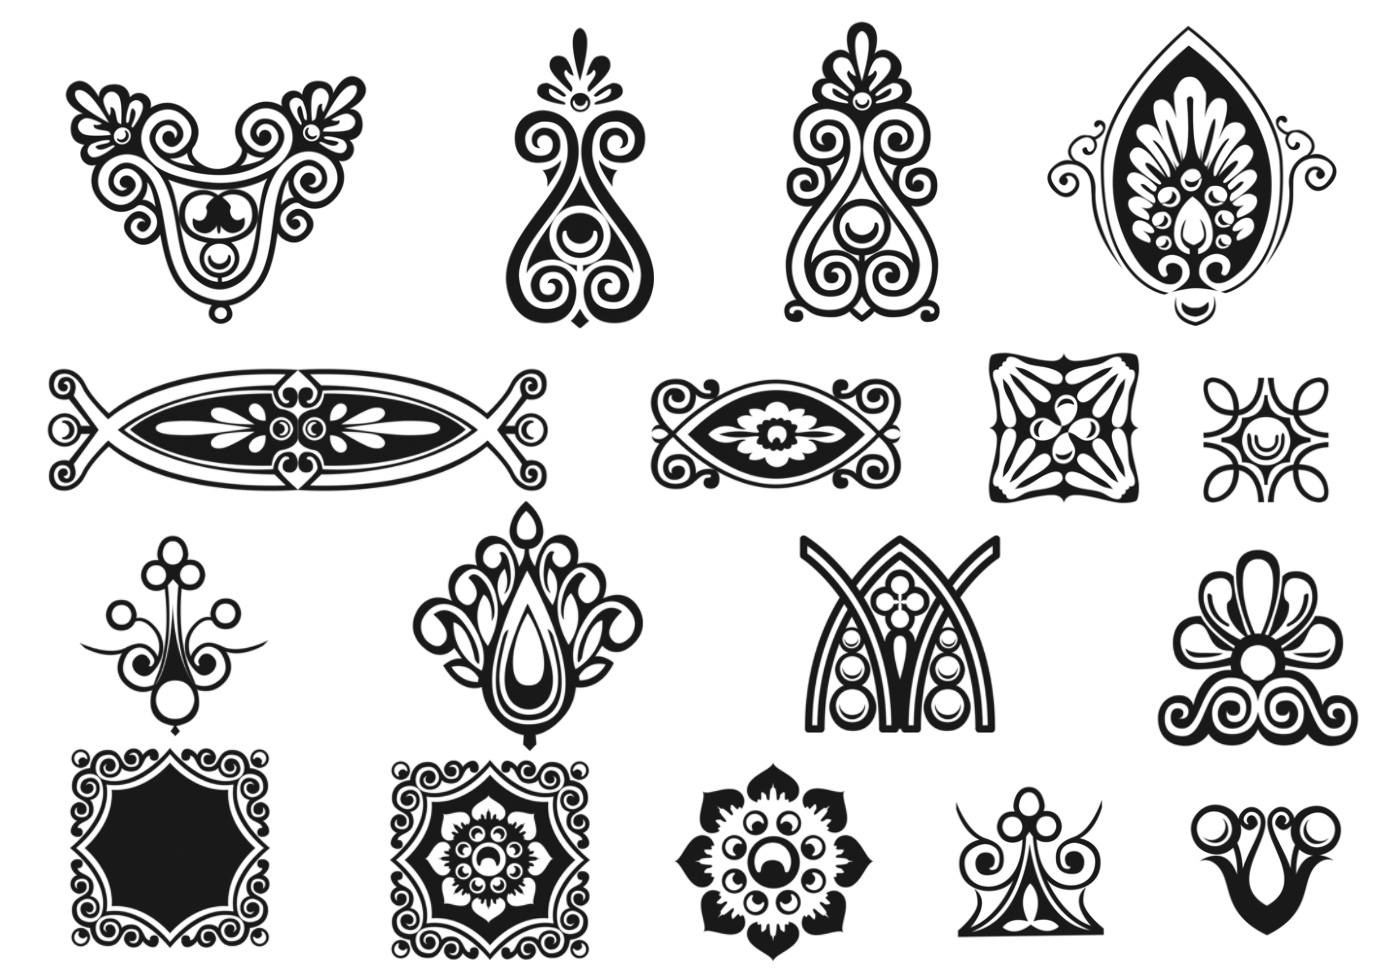 Victorian Ornament Brushes Pack Free Photoshop Brushes